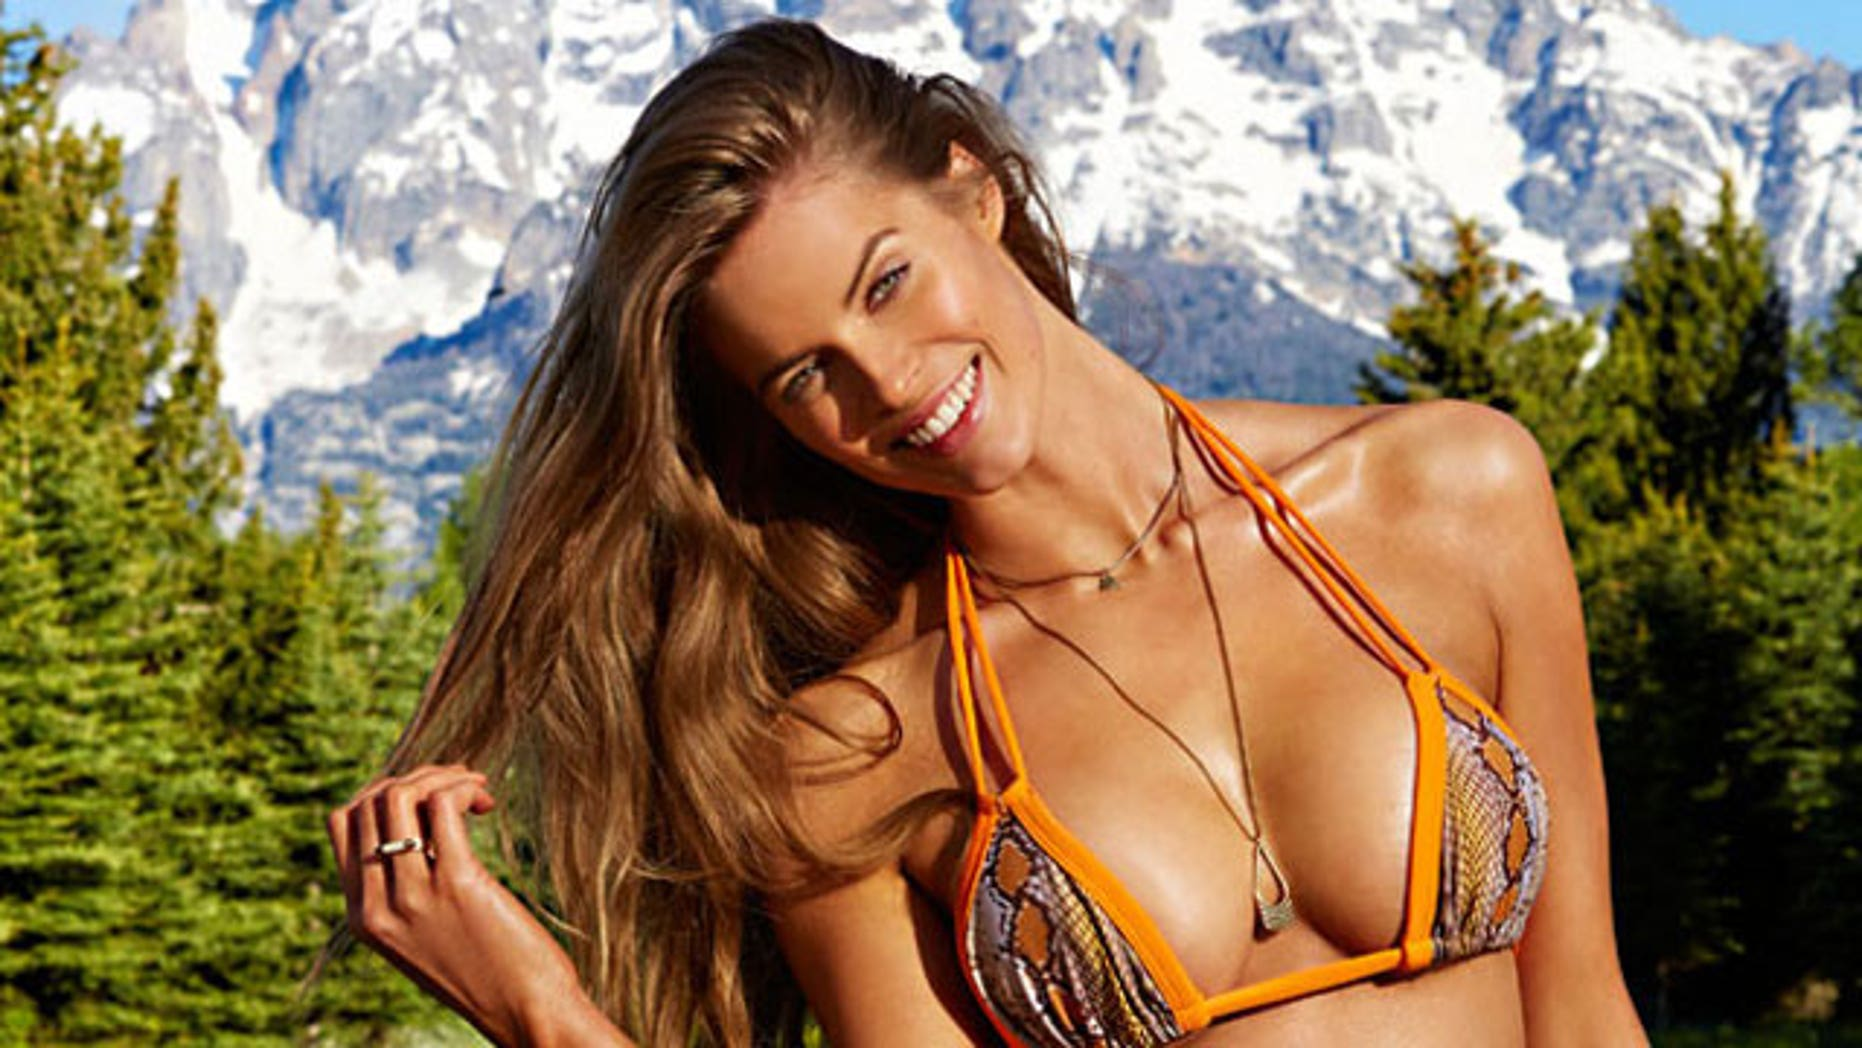 Robin Lawley is the First Plus-Size Model to Appear in SportsIllustrated